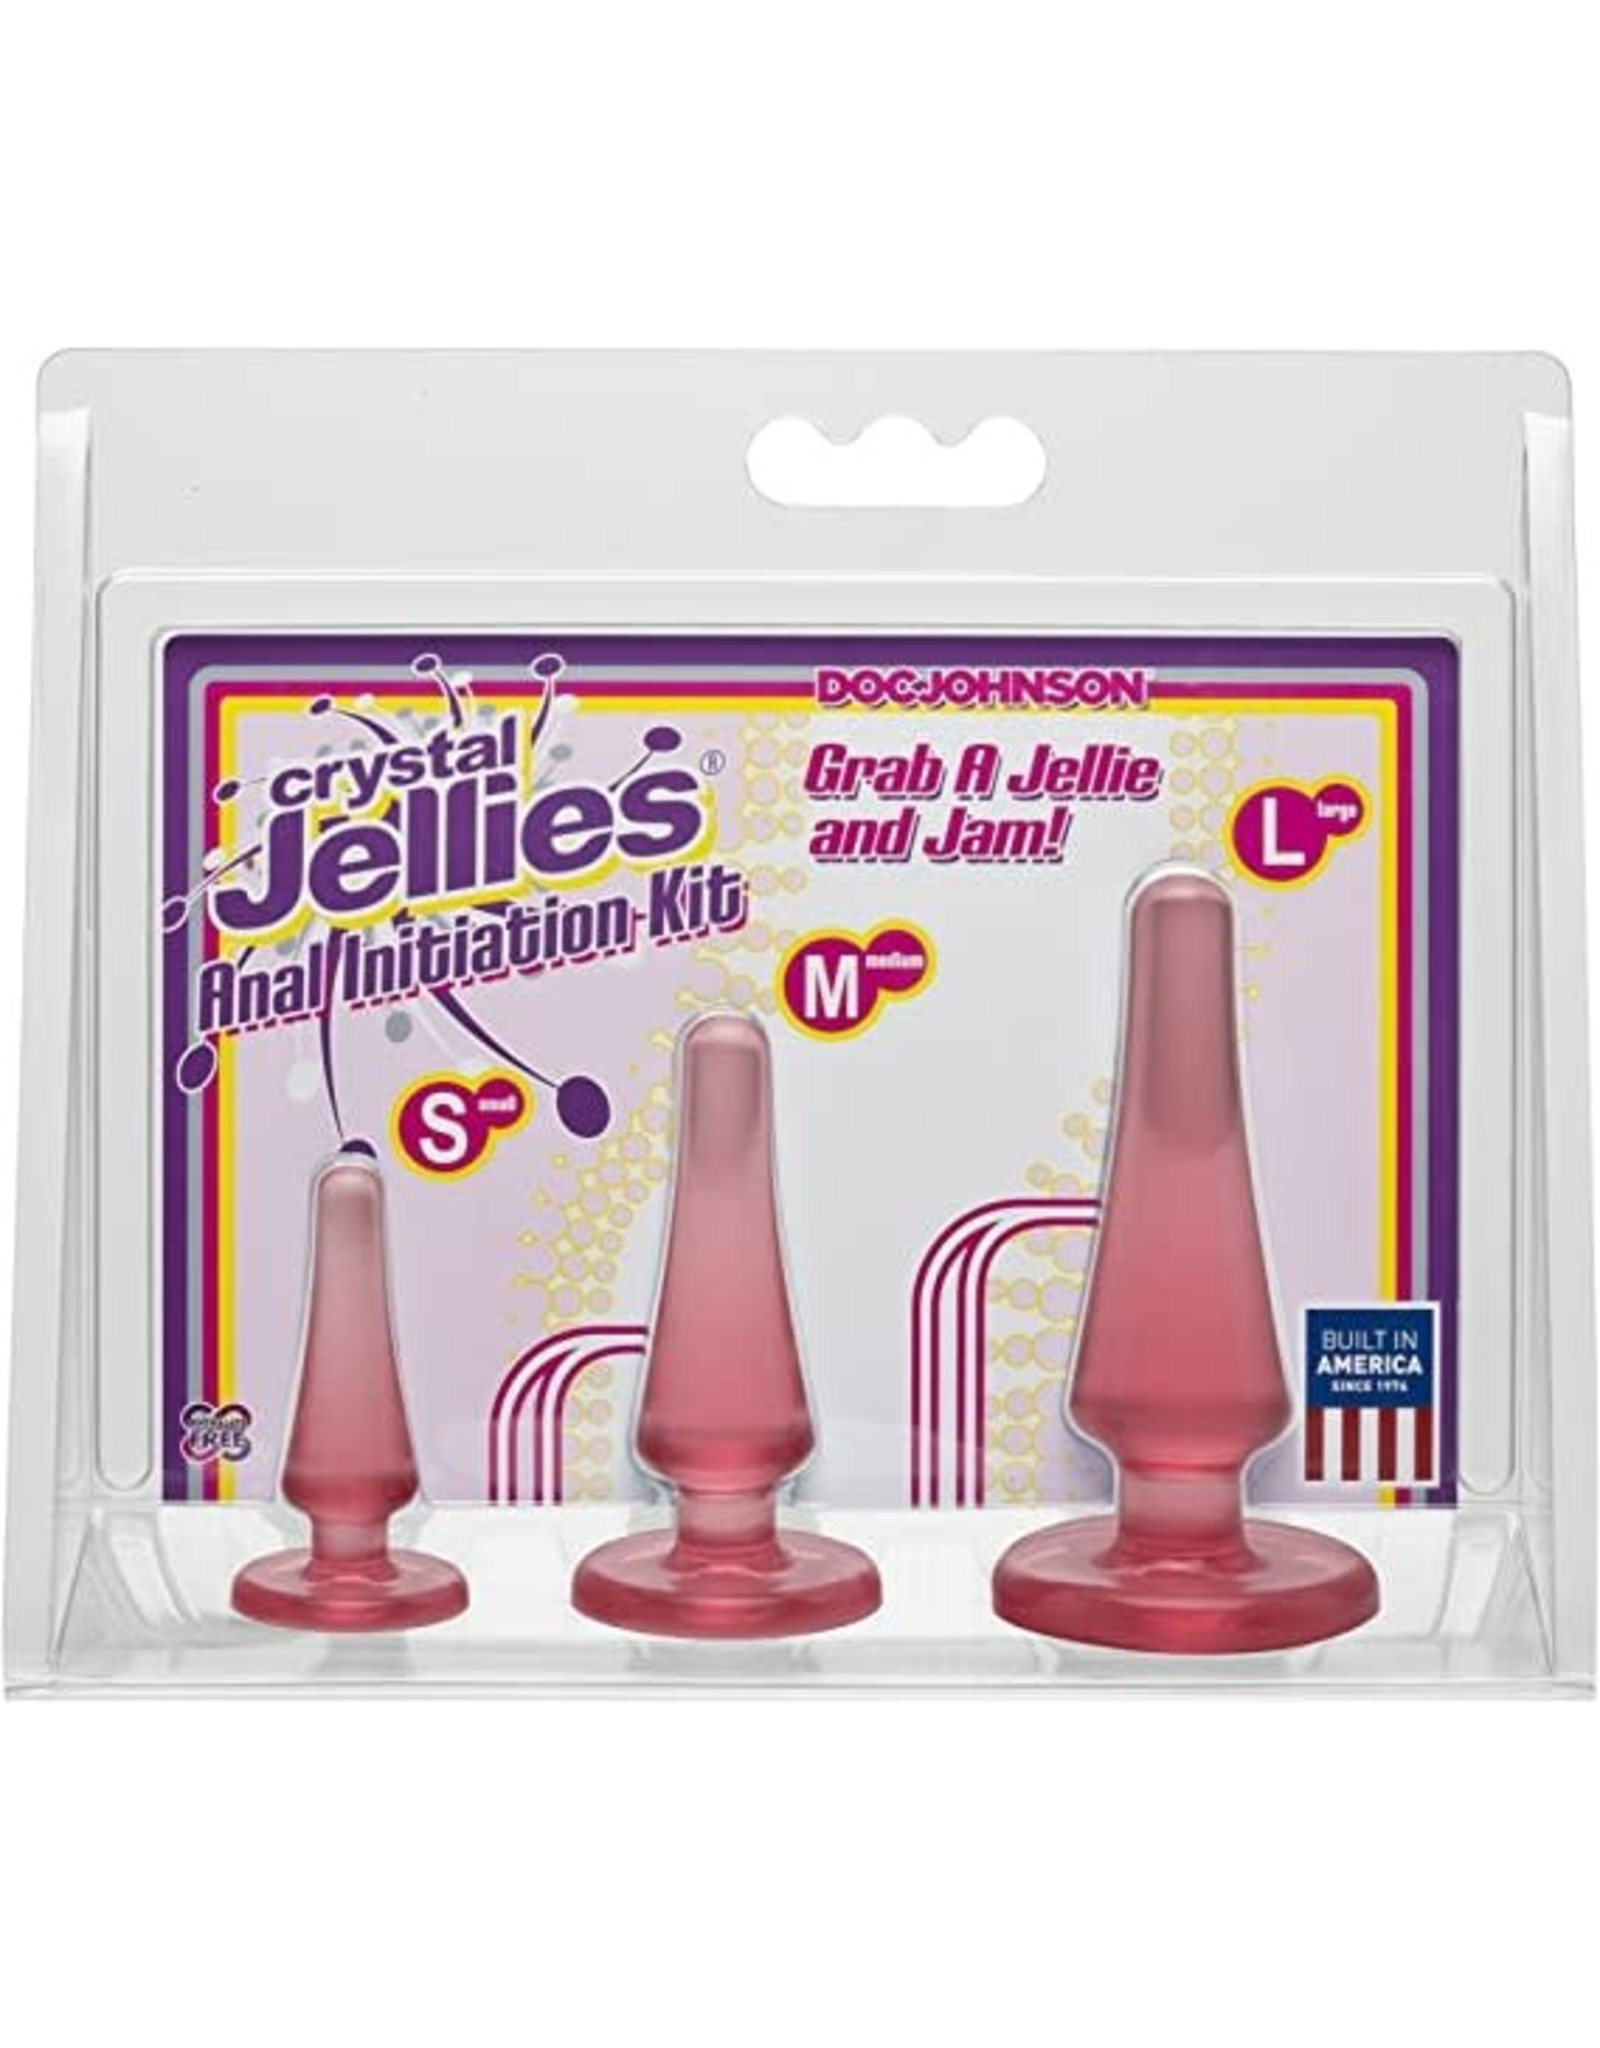 CRYSTAL JELLIES - ANAL INITIATION KIT - PINK